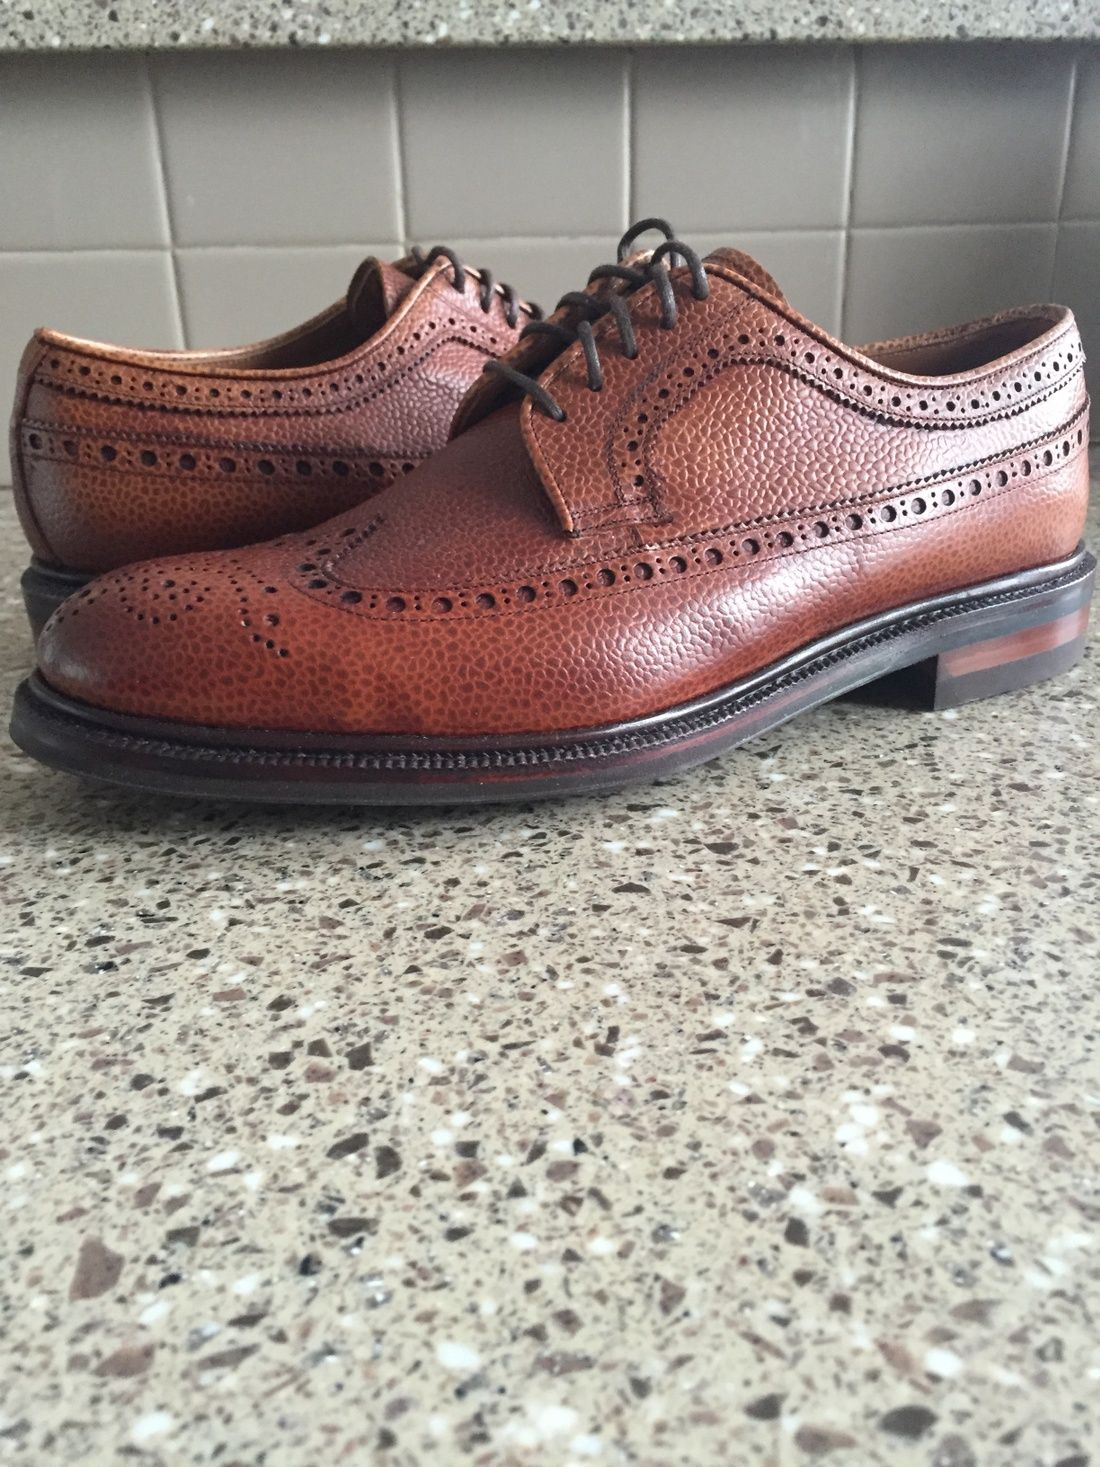 Meermin Longing Bluchers Chestnut Country Calf Size 9 $190 ...